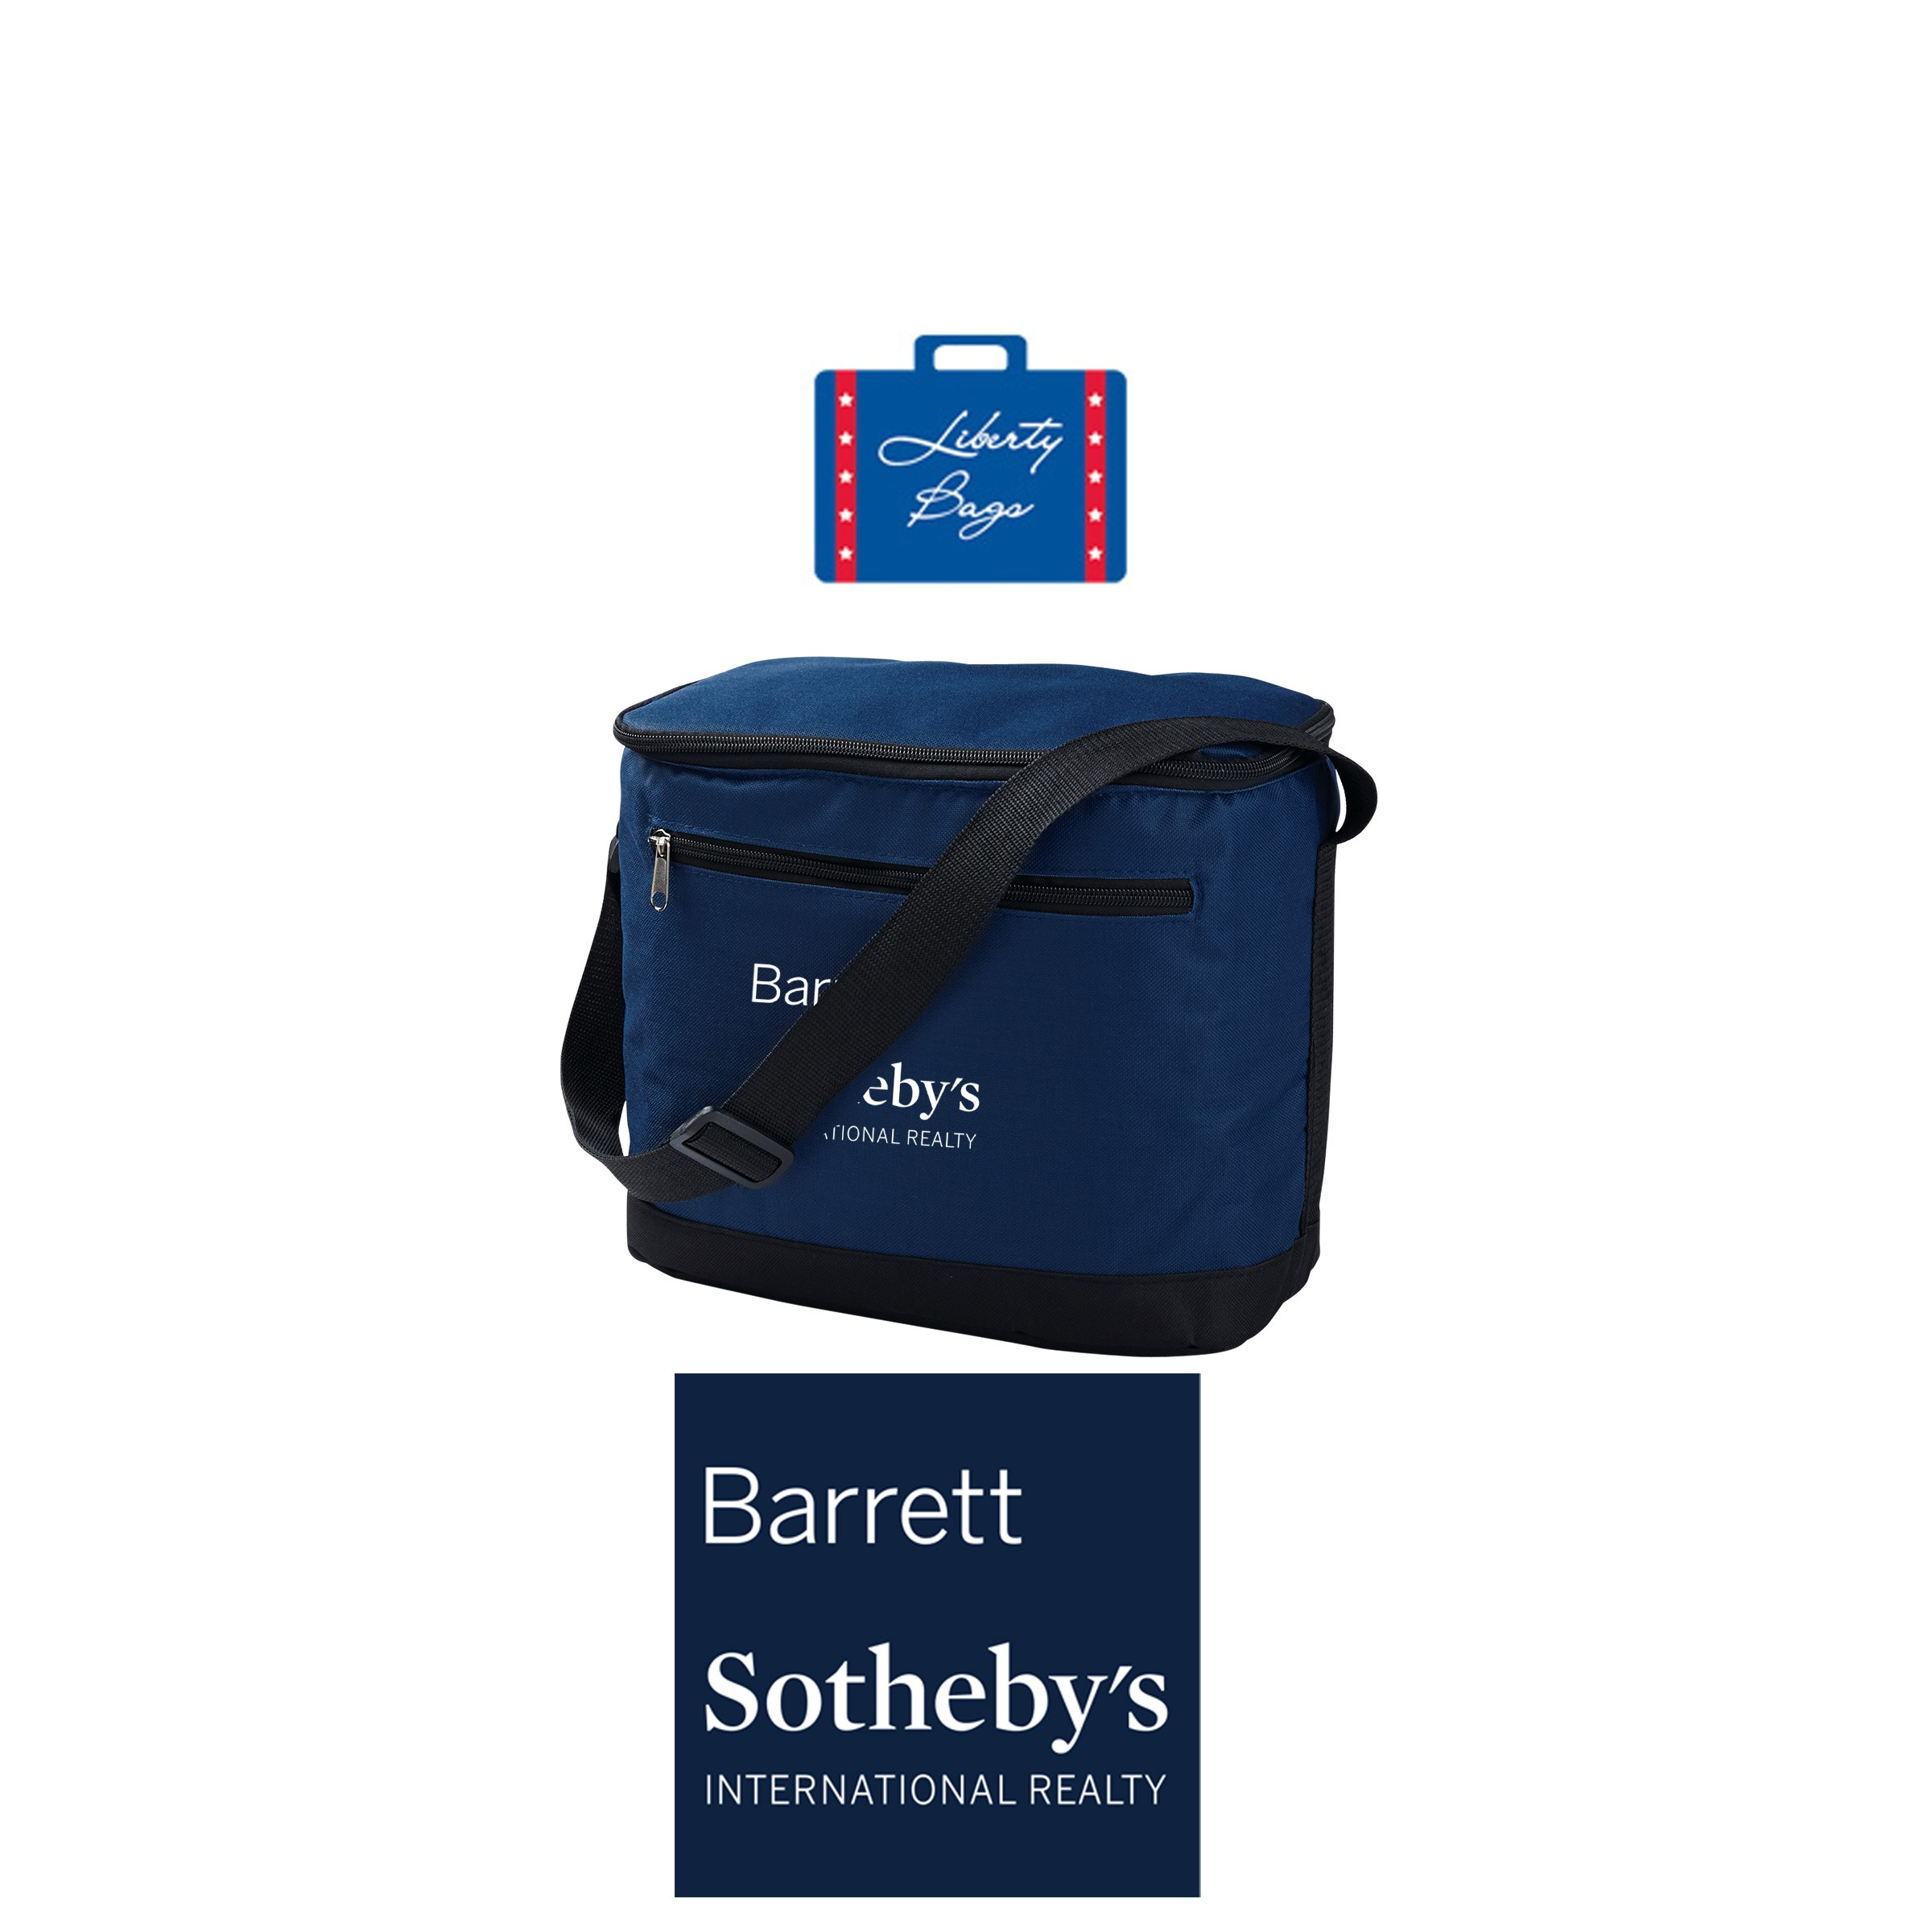 Barrett Sotheby's Liberty Bags 12-Pack Cooler Bag